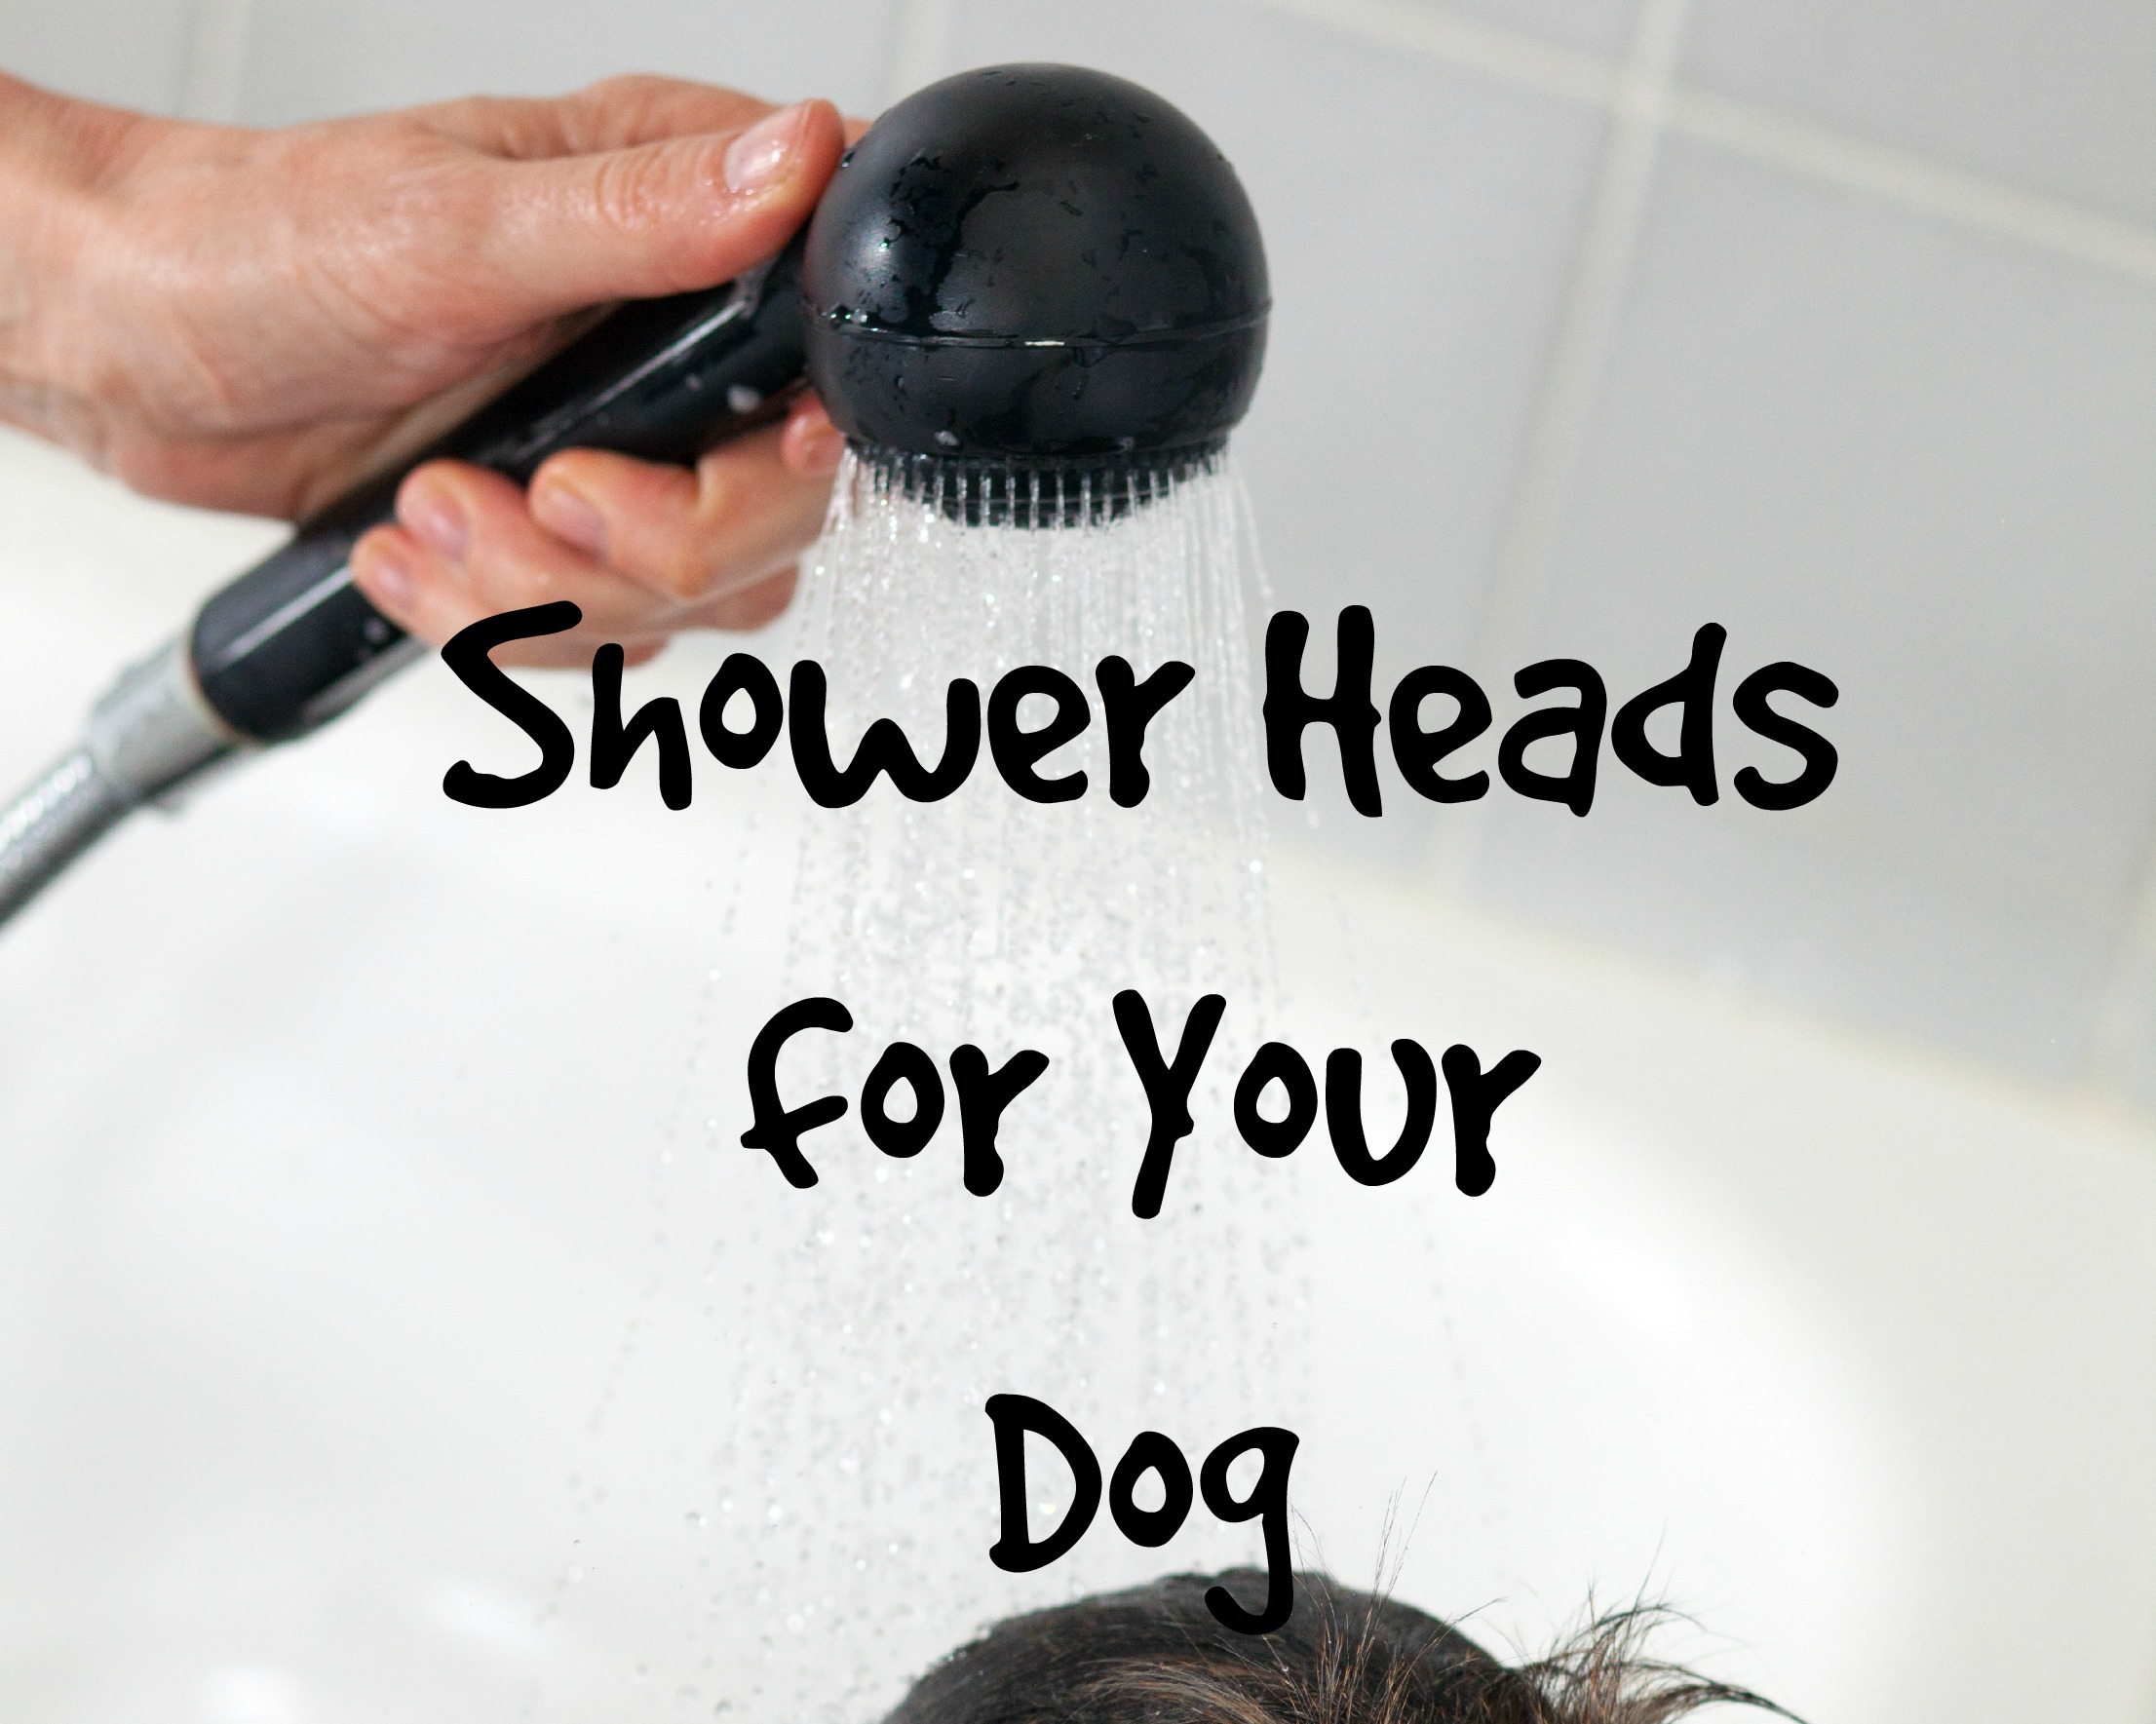 Top 30 hand held shower head bathtub faucet | Hand Held Shower ...